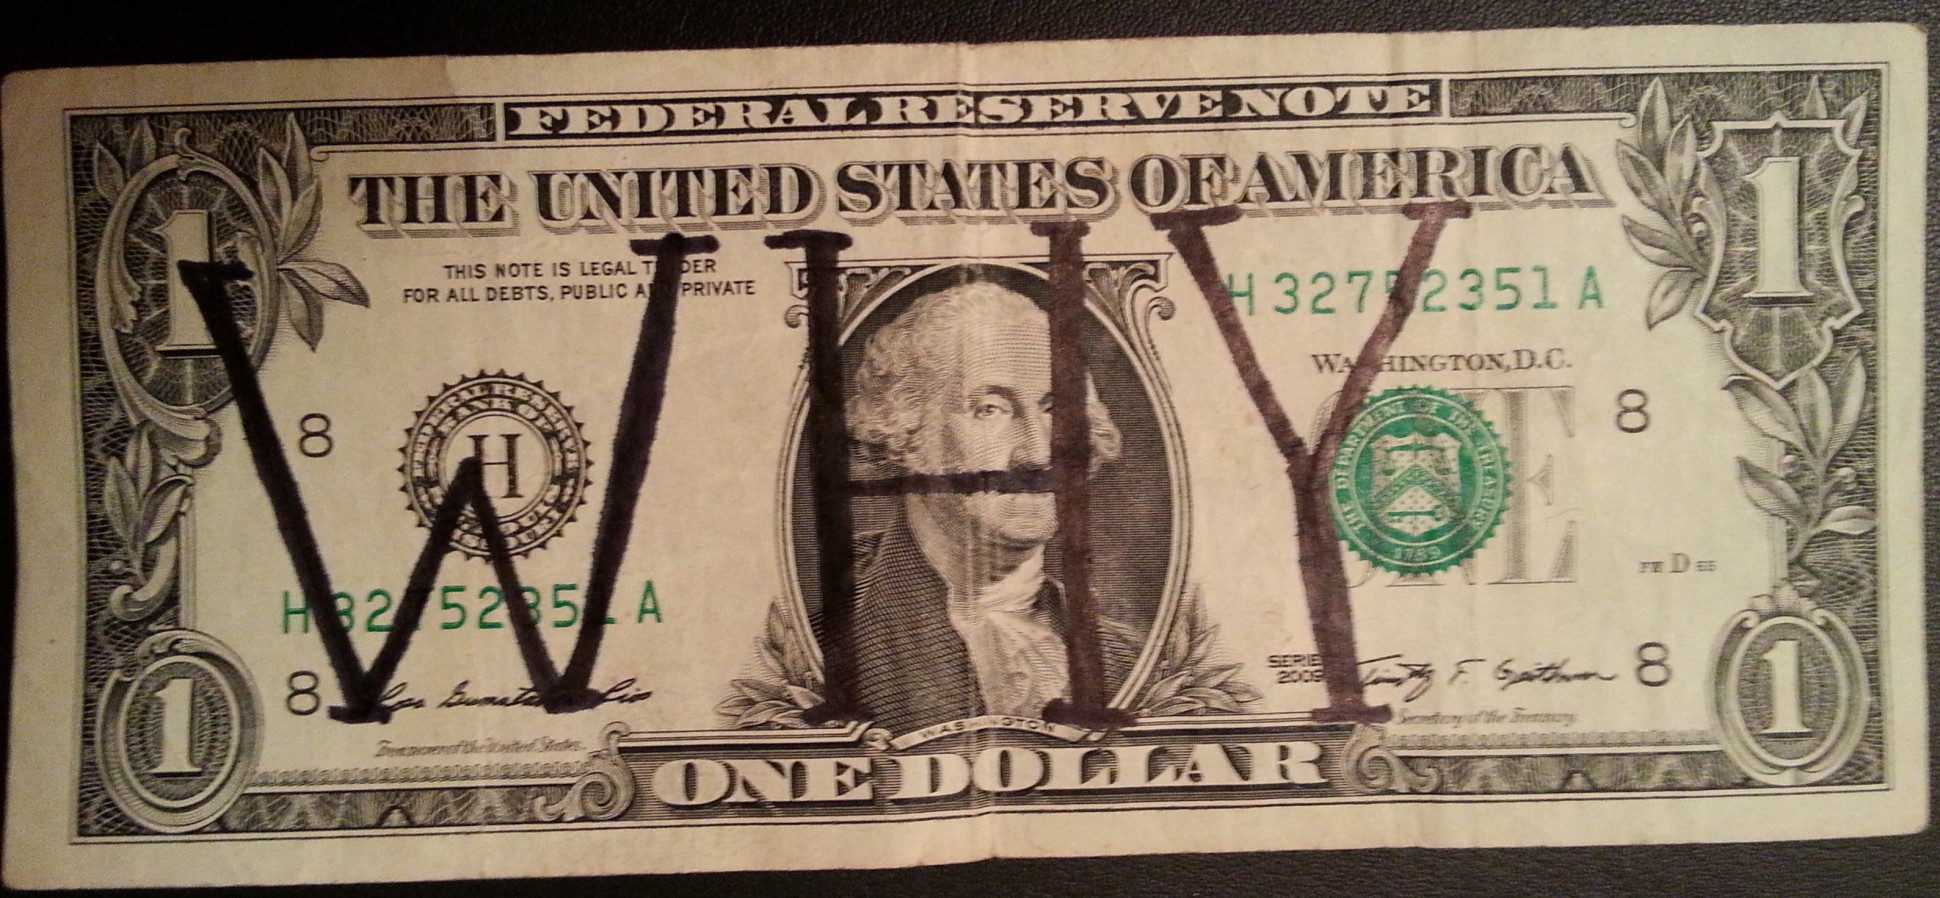 what is the reason for making the paper money small Without paper money, the criminal class would have to use banks, greatly increasing their chance of detection, or use a vastly more troublesome means of exchange.